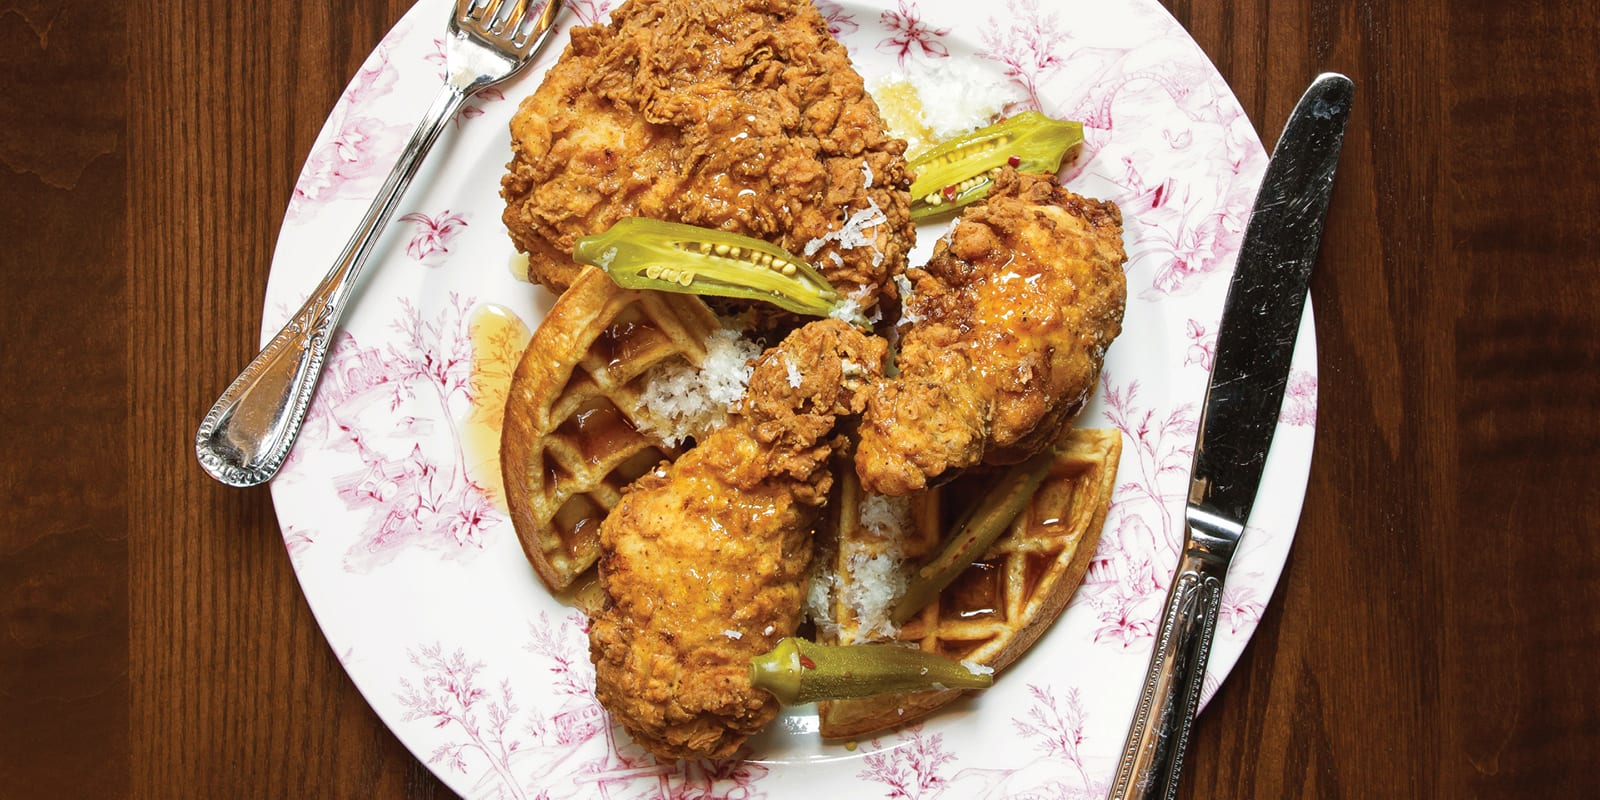 Edward Lee's Fried Chicken and Waffles